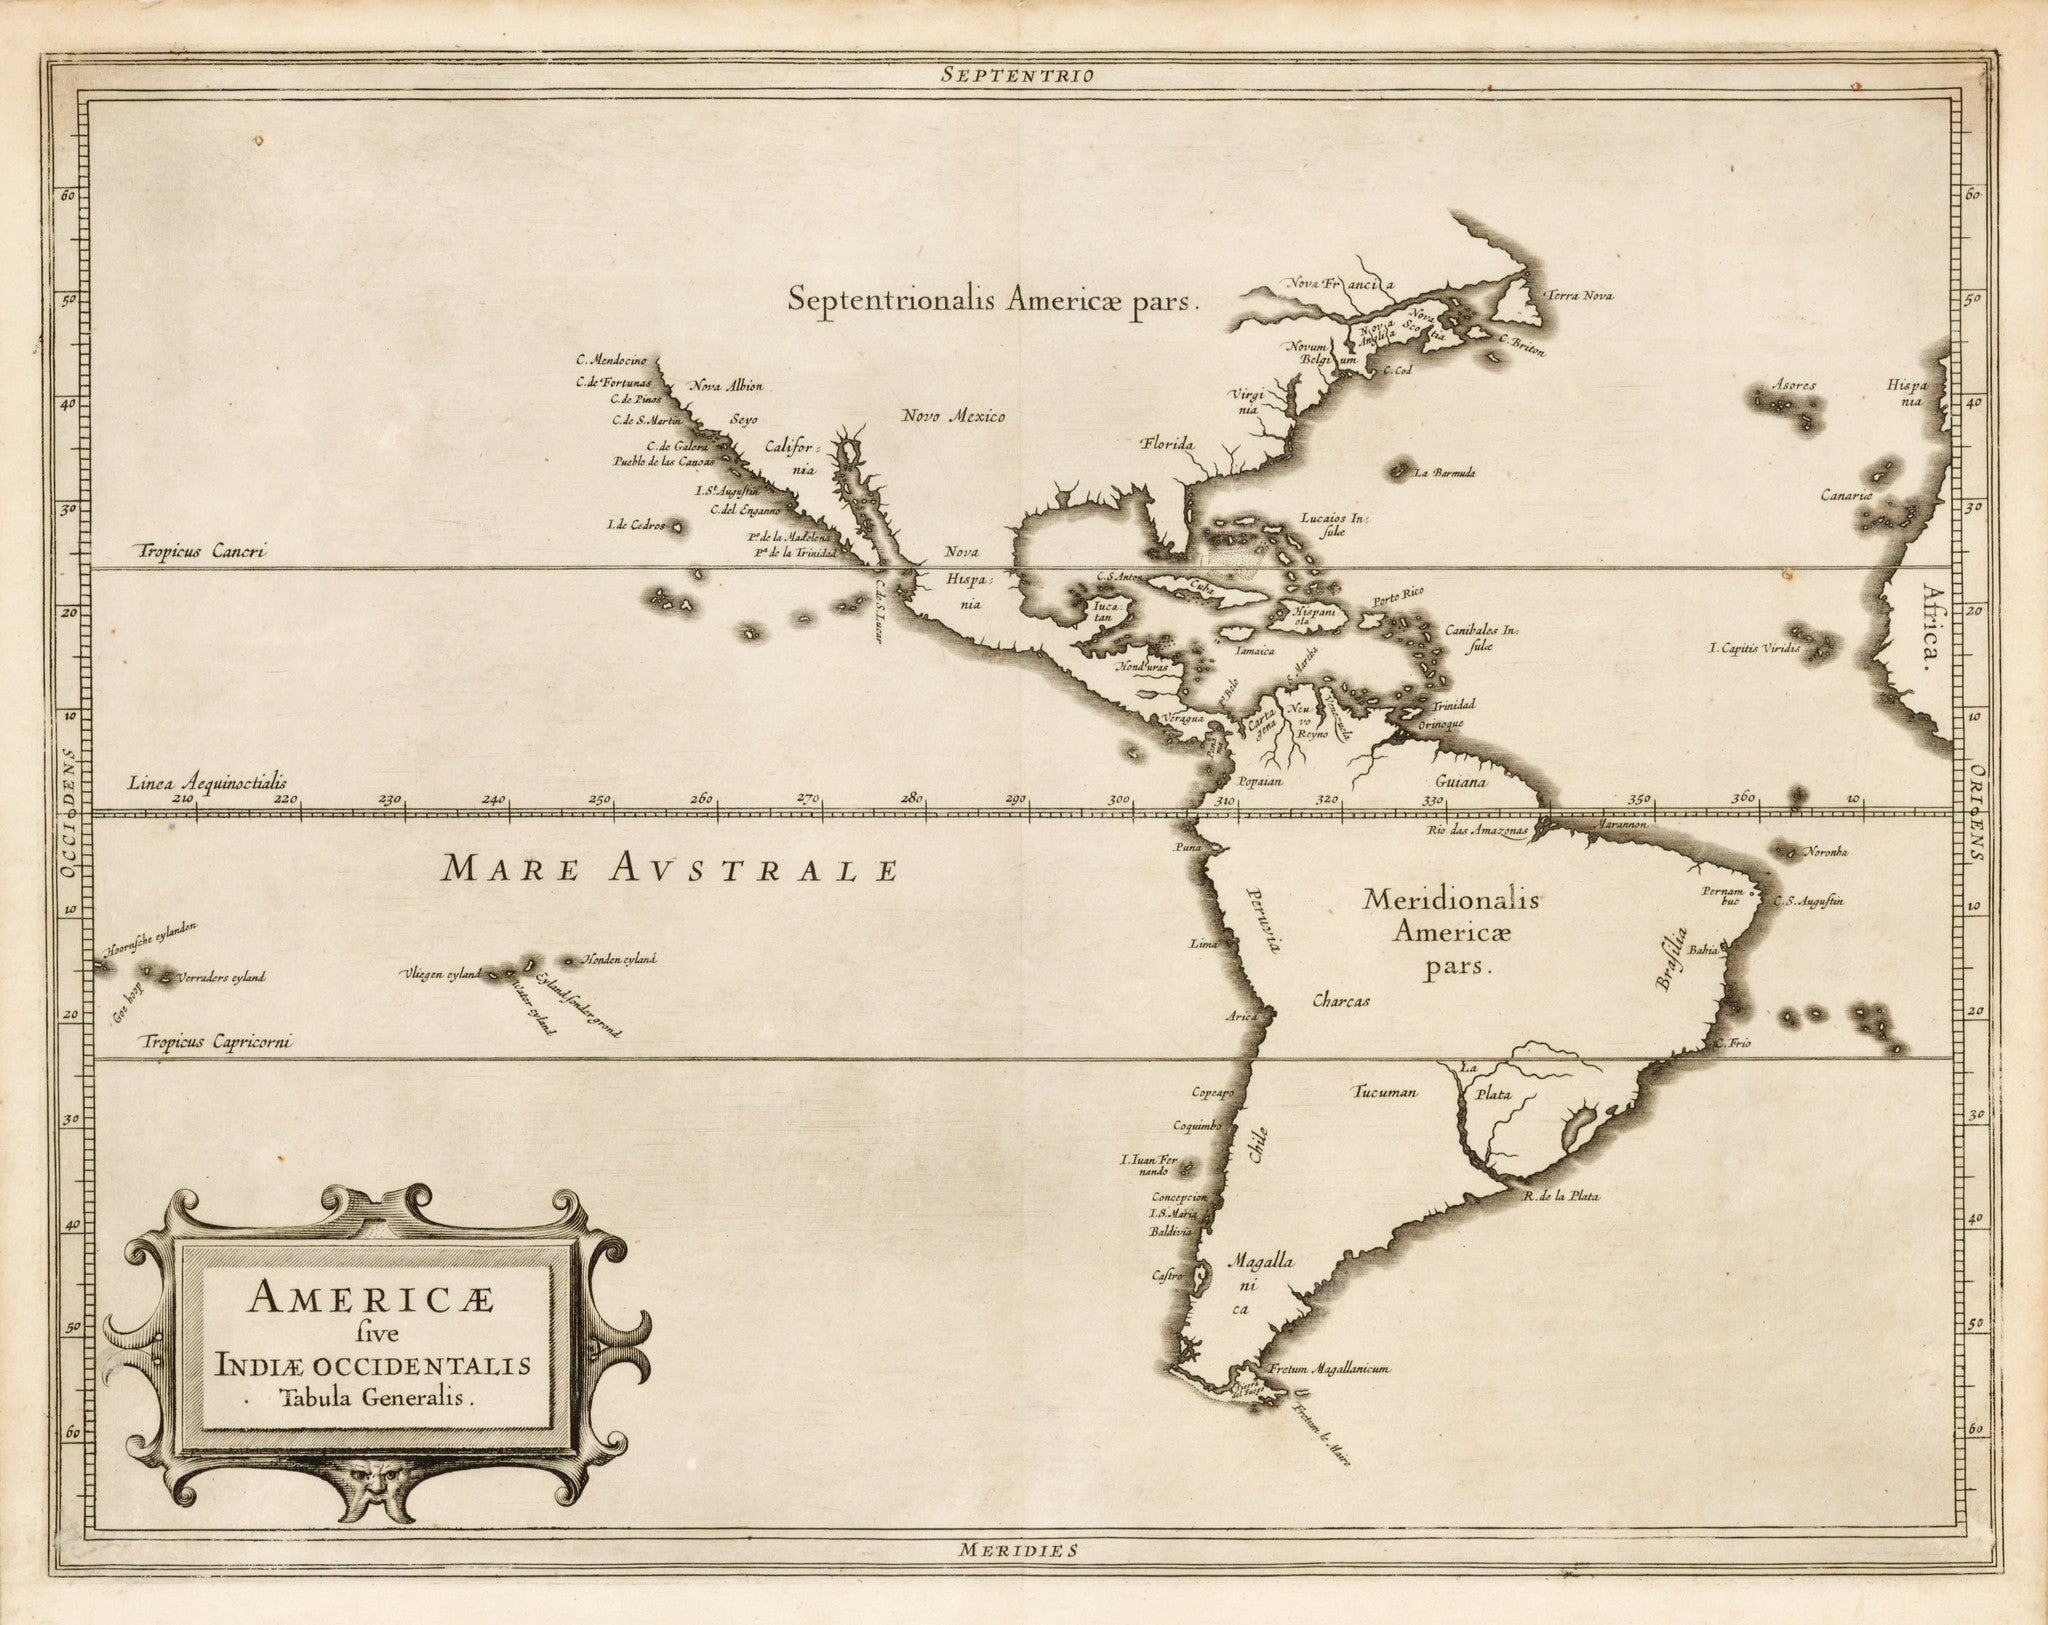 HJBMaps: Americae sive Indiae Occidentalis Tabula Generalis By: De Laet Date: 1625 (Published) Amsterdam Dimensions: 10.75 x 14 inches